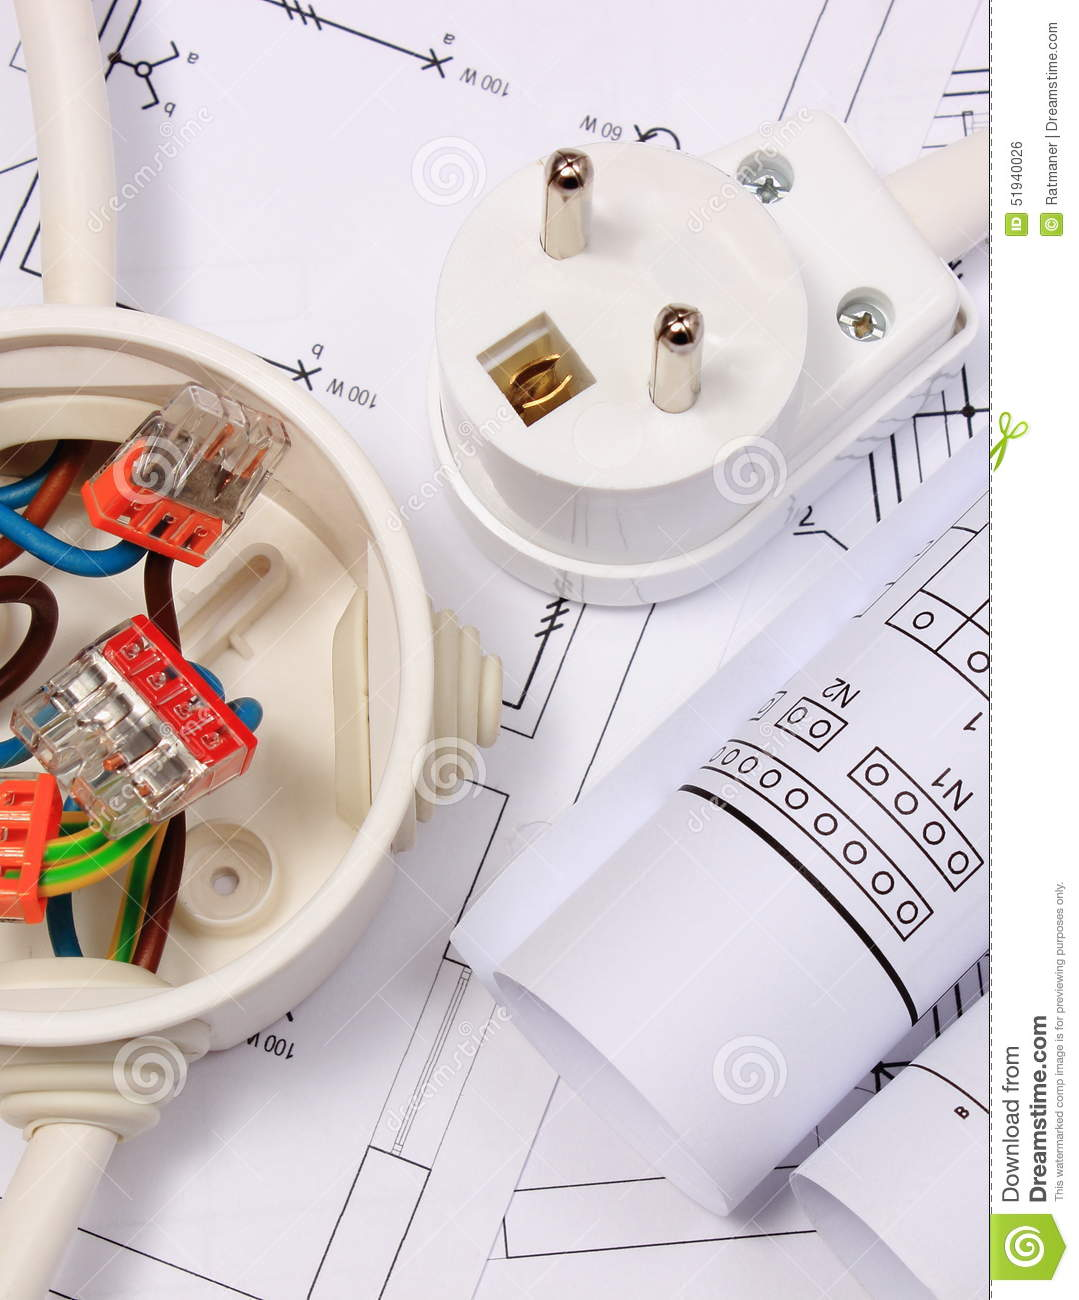 Electrical Box Diagrams And Electric Plug On Construction Drawing Wiring Diagram